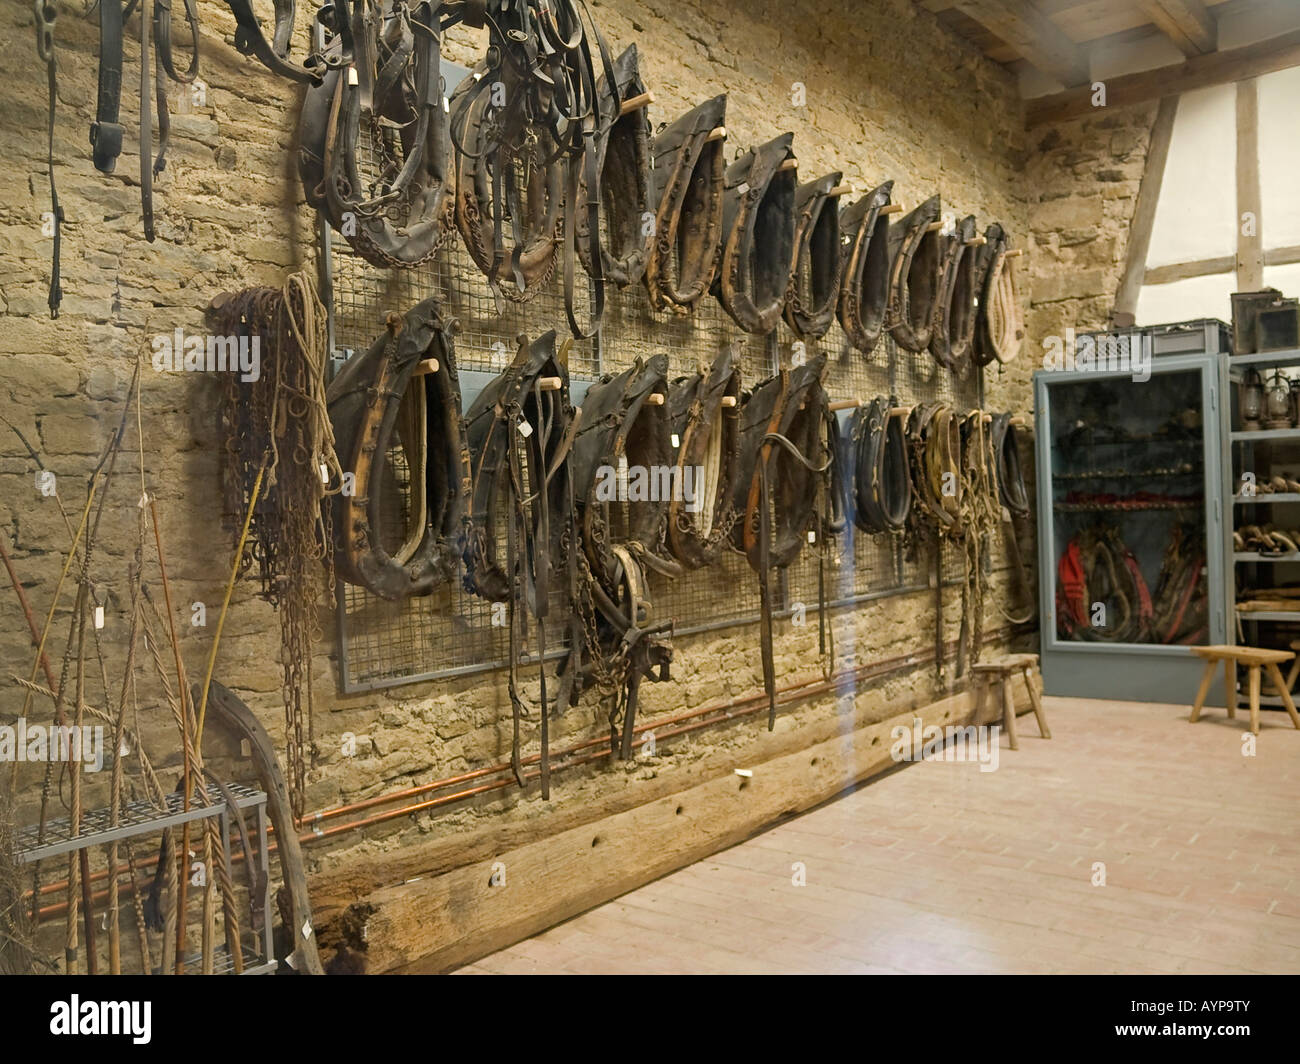 Horse Harness On Wall In Stock Photos Ayp Wiring Yoke Rows Of Old Yokes For Hanging A Barn The